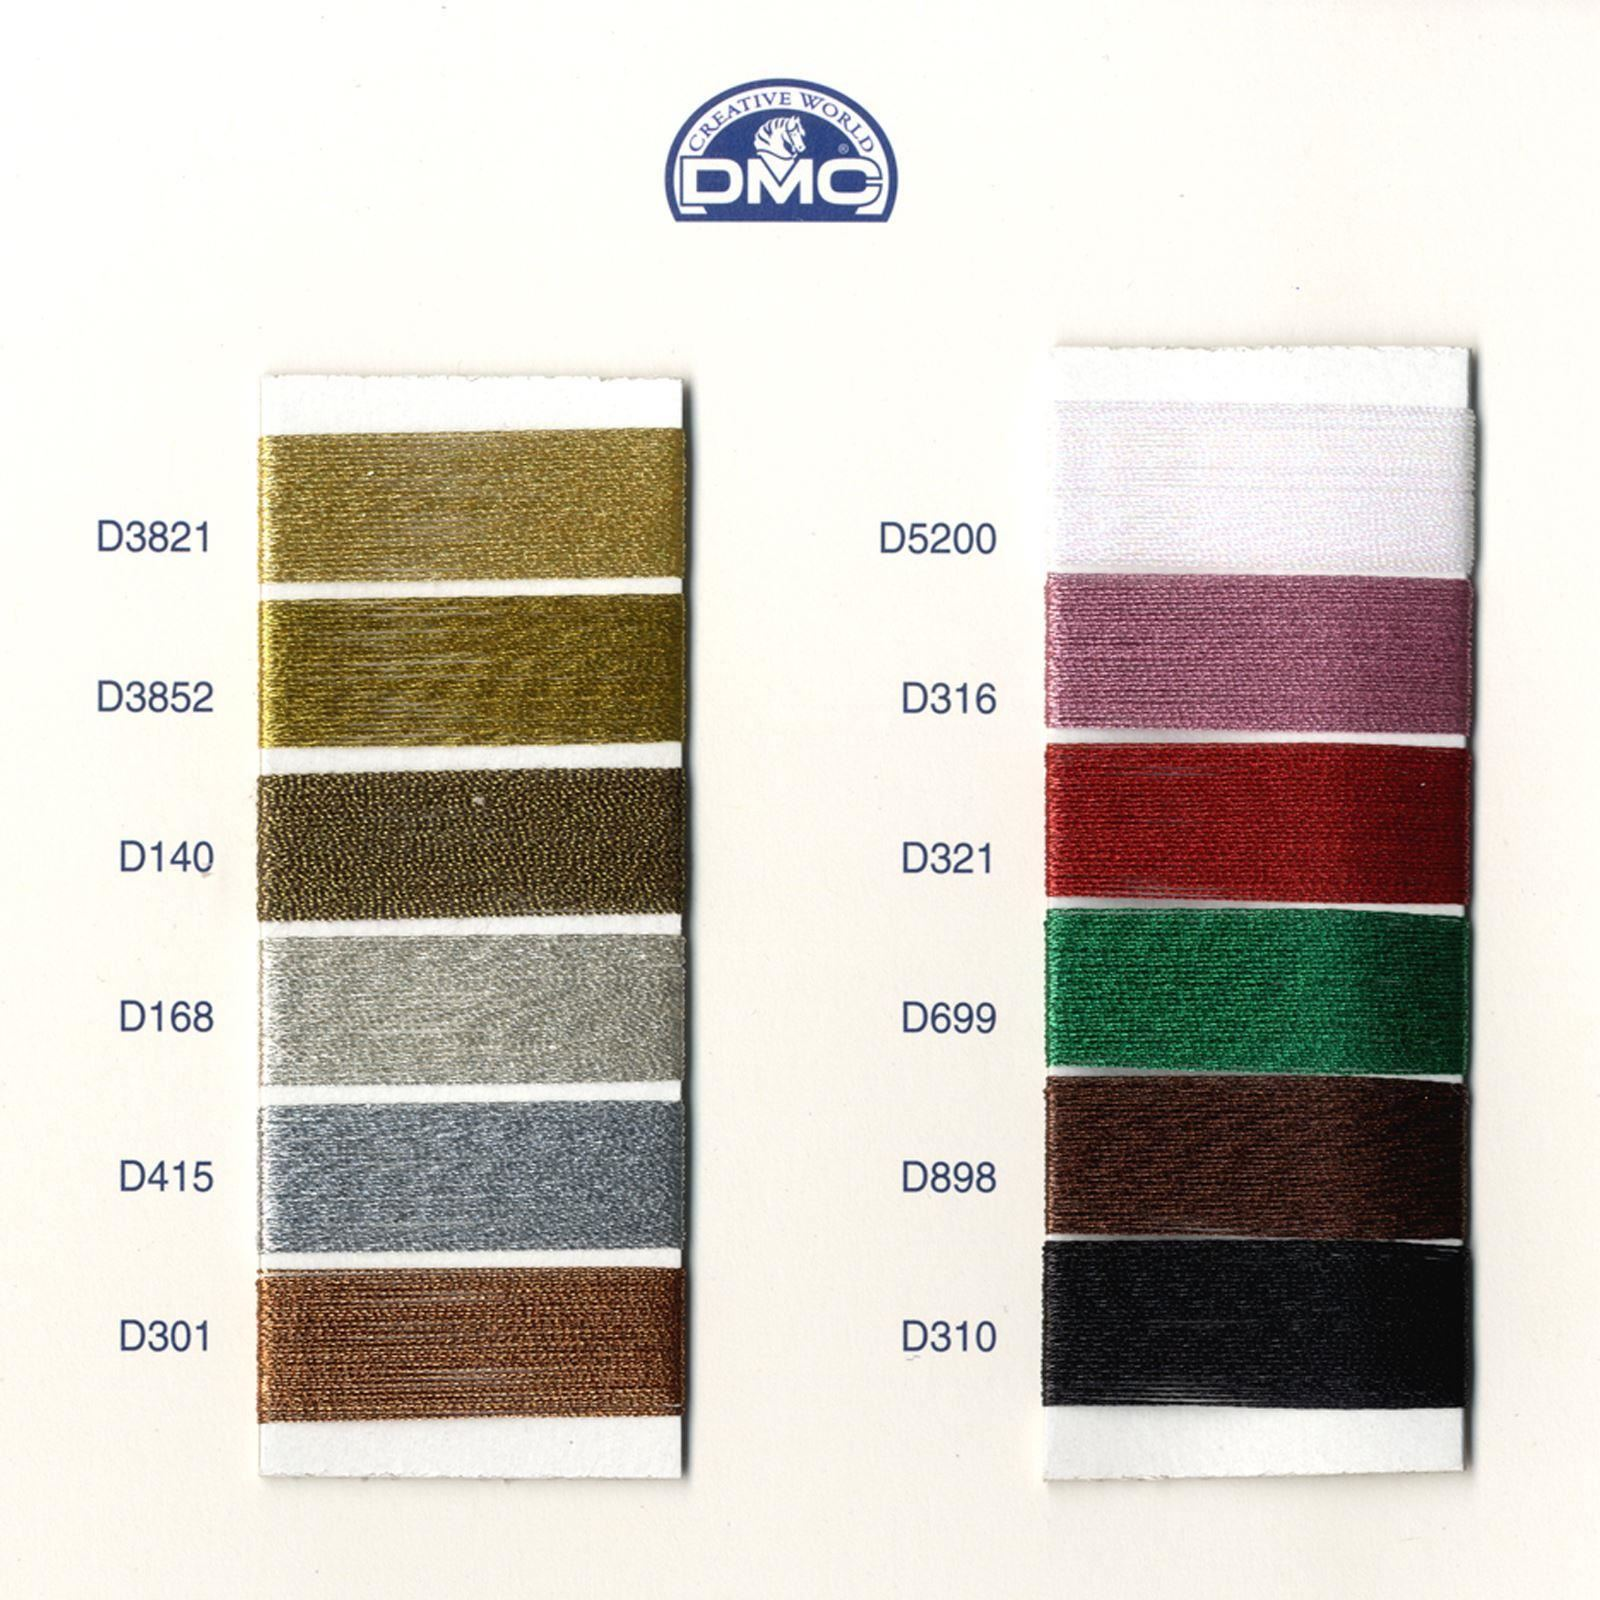 DMC-Diamant-Metallic-Embroidery-Thread-35m-Spool-Cross-Stitch thumbnail 36